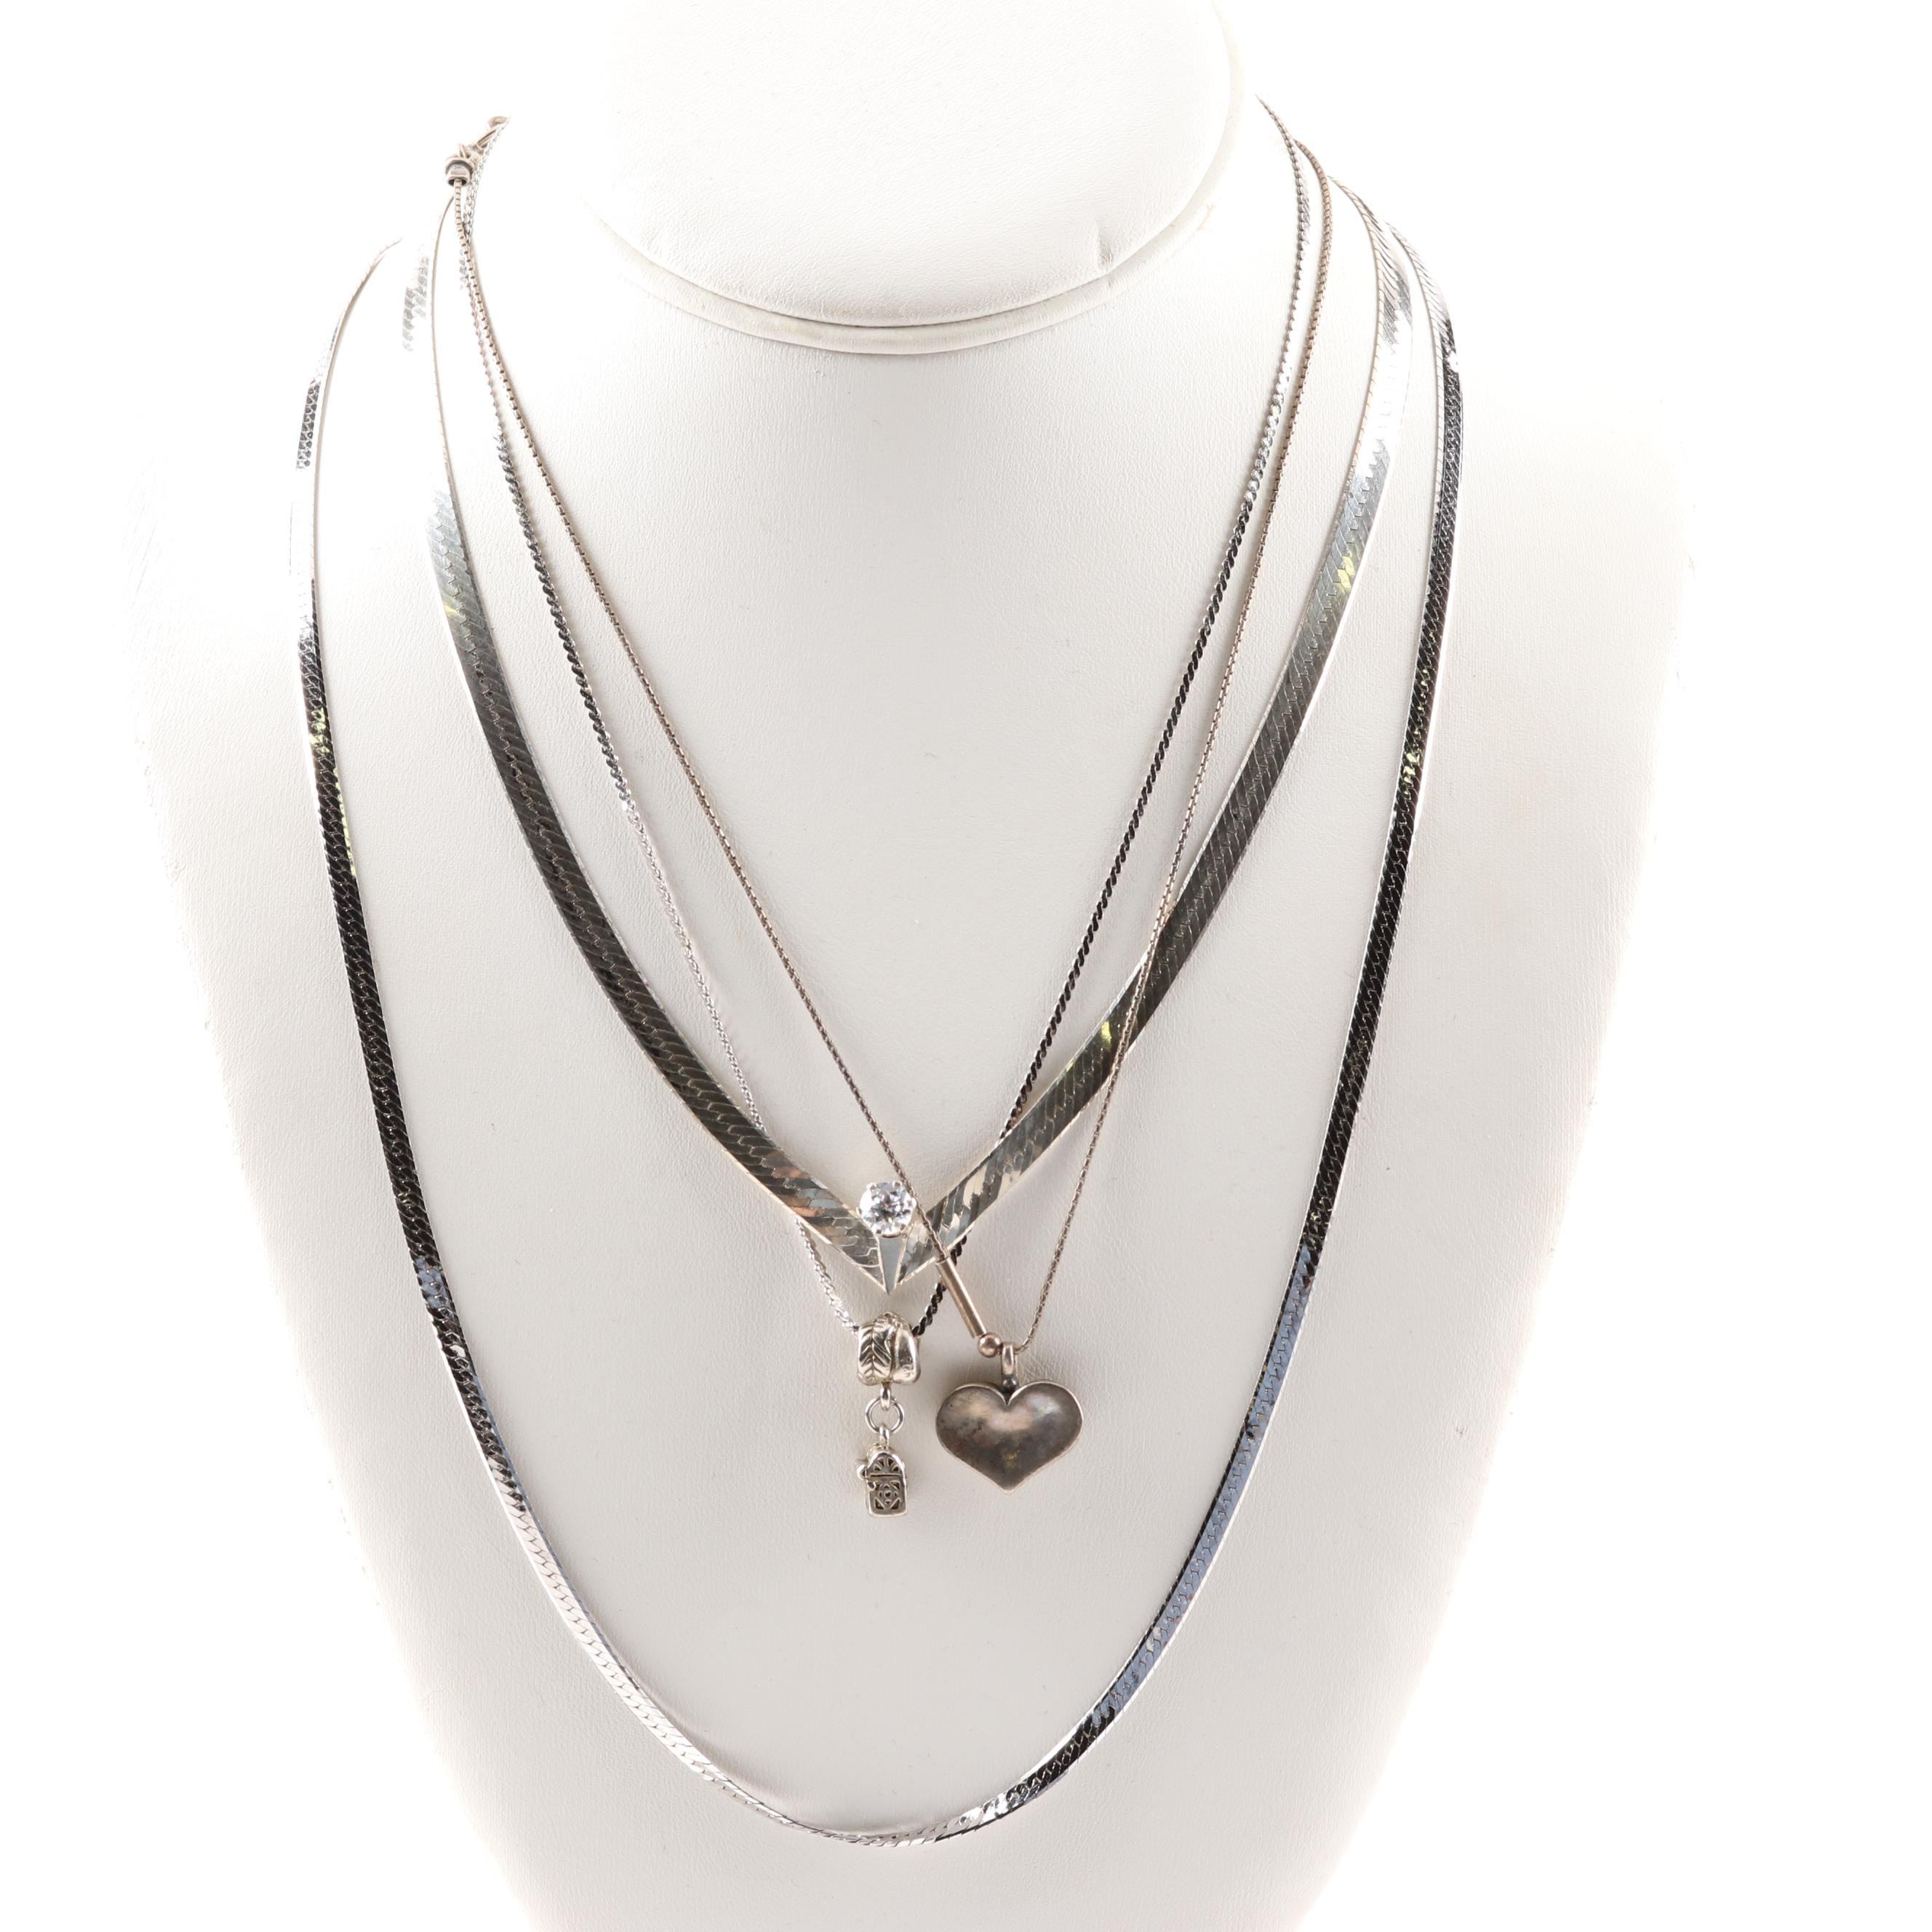 Sterling Silver Cubic Zirconia Herringbone, Heart, and Purse Pendant Necklaces